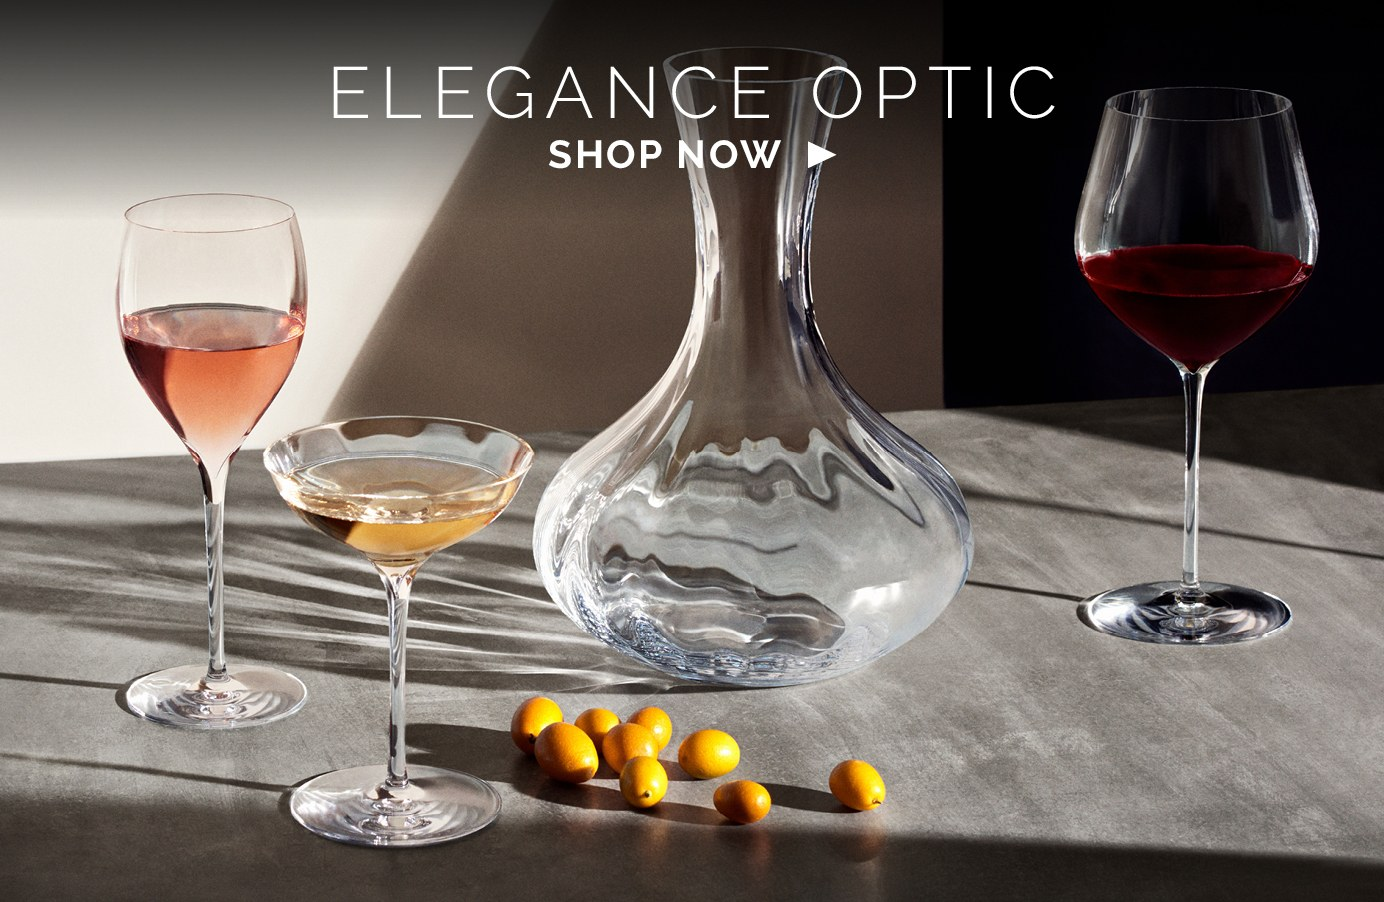 elegance optic stemware bottom left